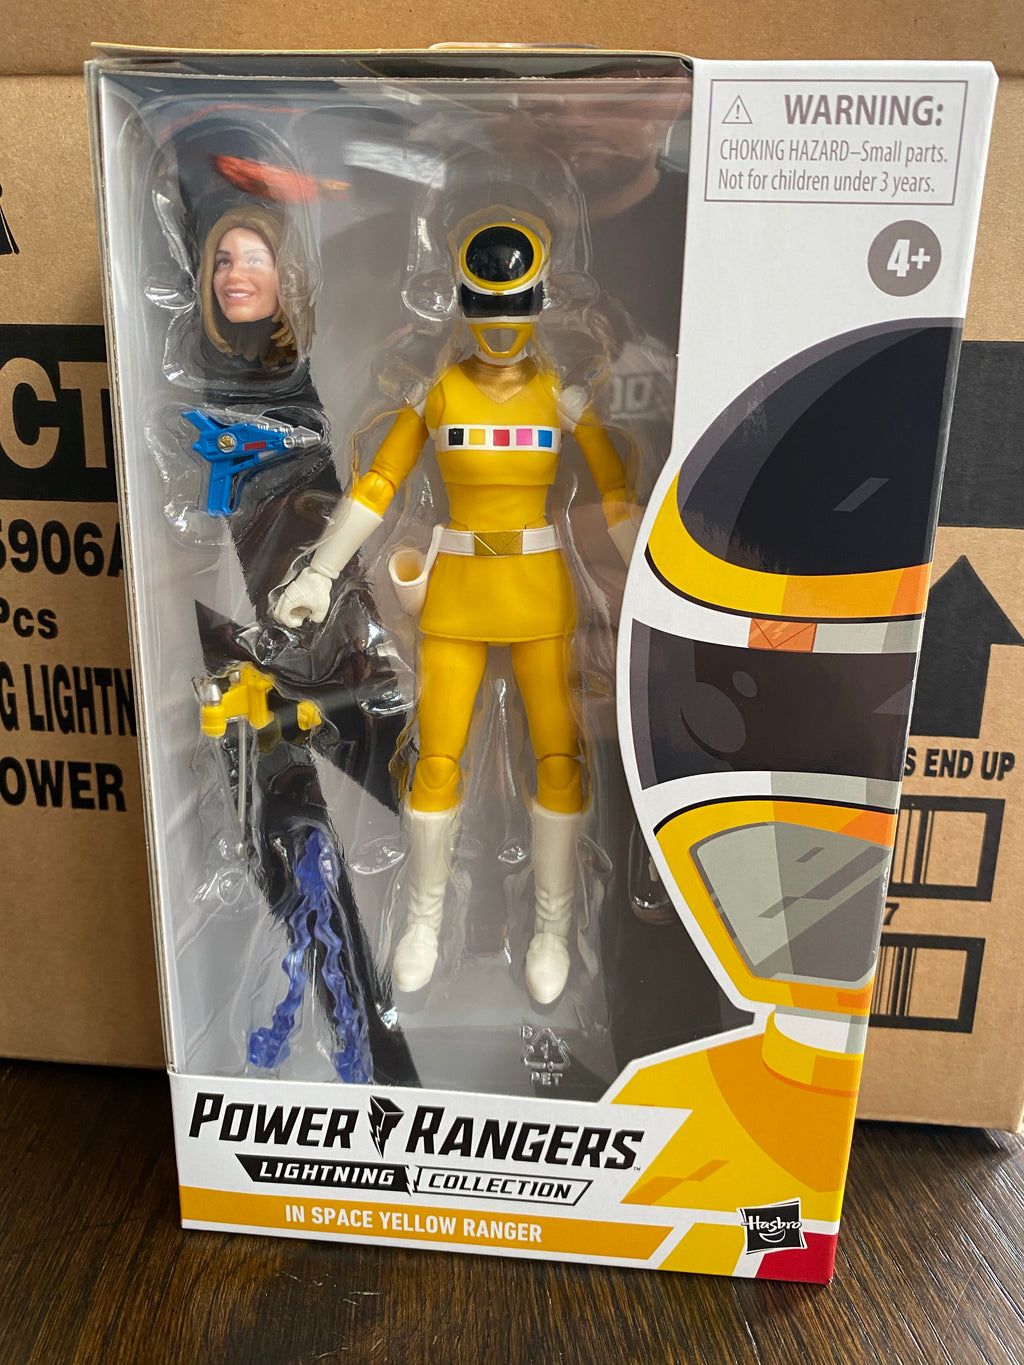 Hasbro Power Rangers Lightning Collection In Space Yellow Ranger